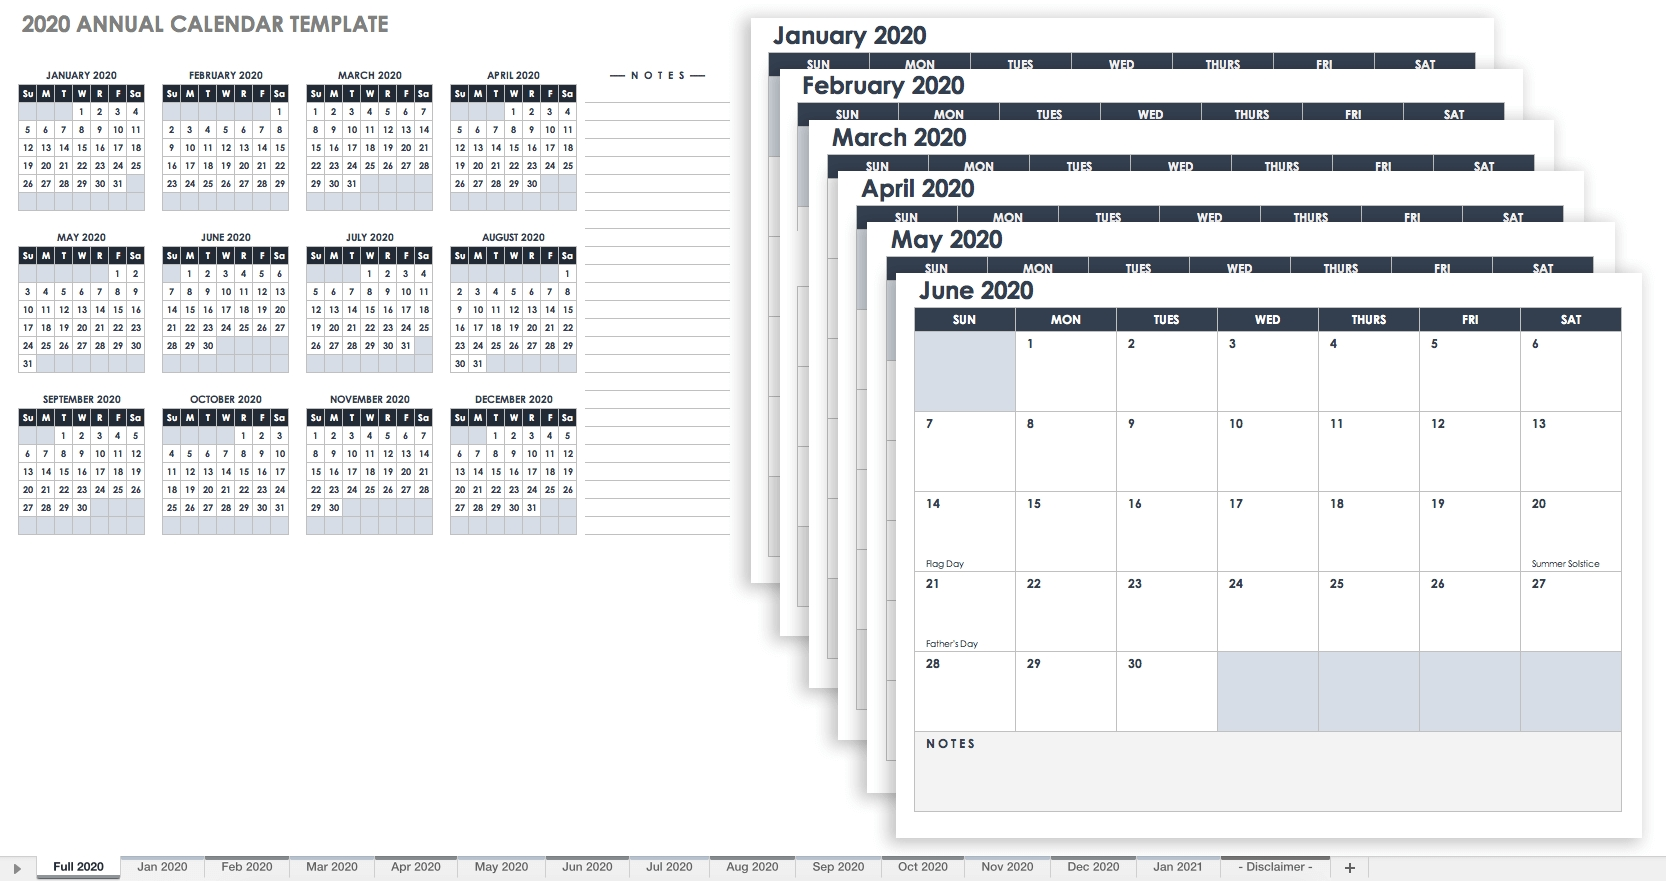 Free Blank Calendar Templates - Smartsheet pertaining to Blank Fill In Calendar Templates